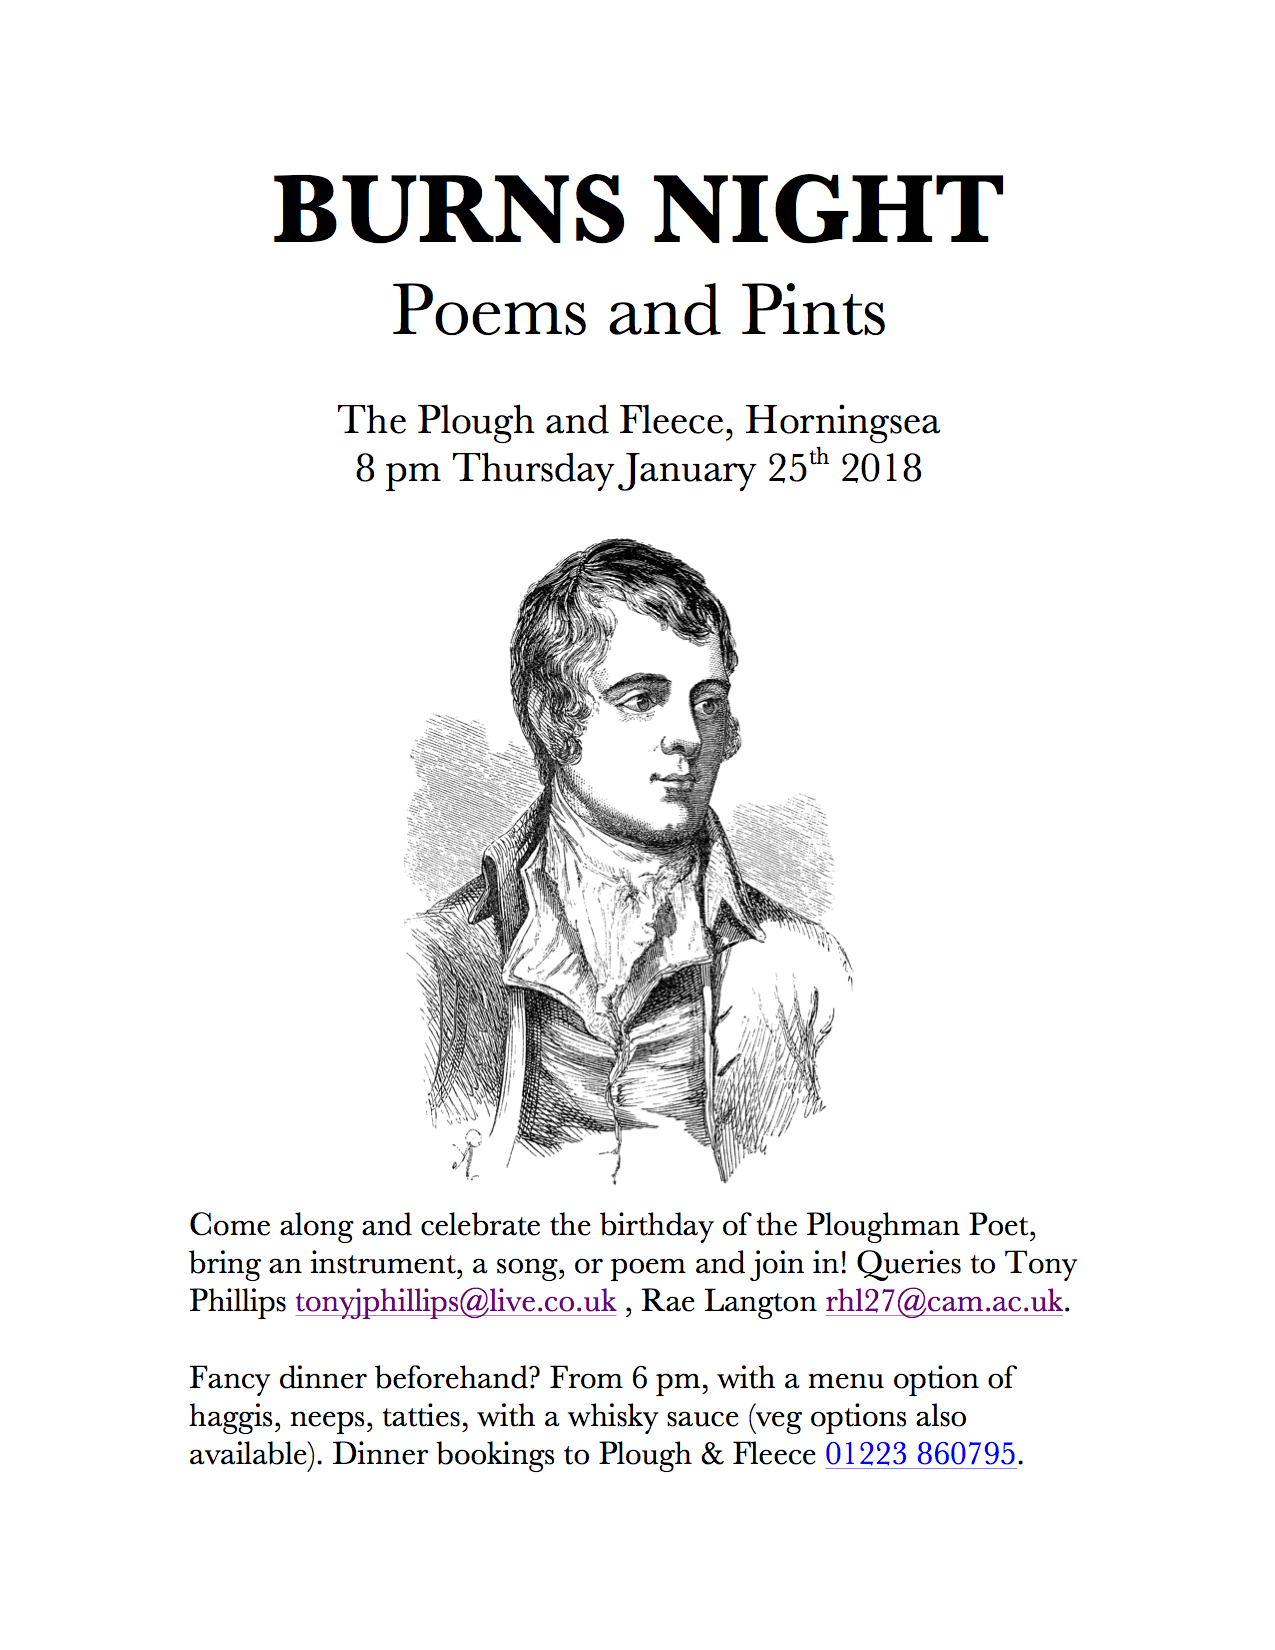 BURNS NIGHT POEMS AND PINTS FLYER